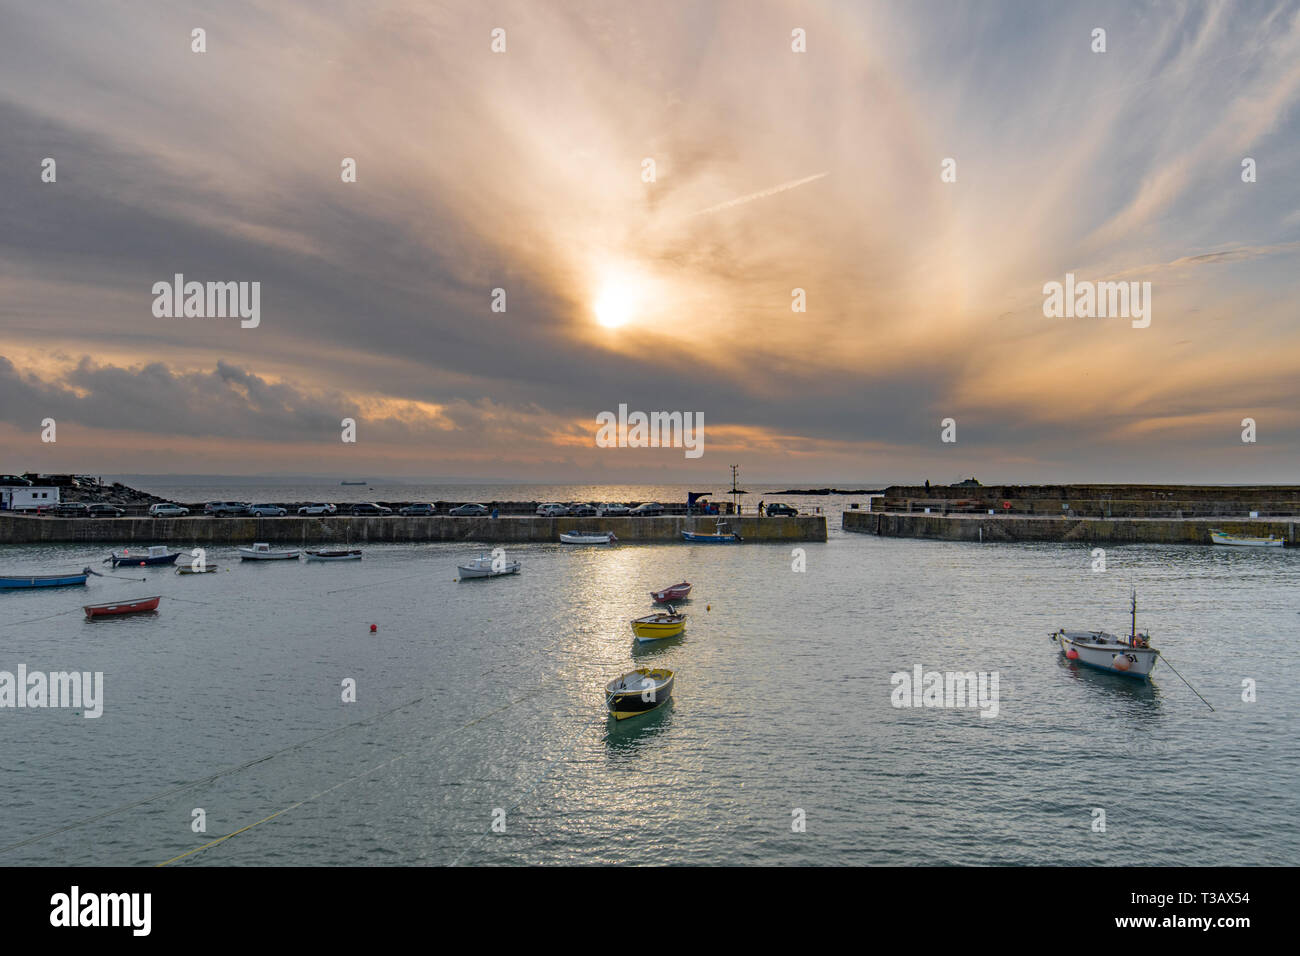 Mousehole, Cornwall, UK. 8th April 2019. UK Weather. The sun just starting to break through the low clouds this morning at Mousehole, for the first week of the Easter holidays. Credit: Simon Maycock/Alamy Live News Stock Photo